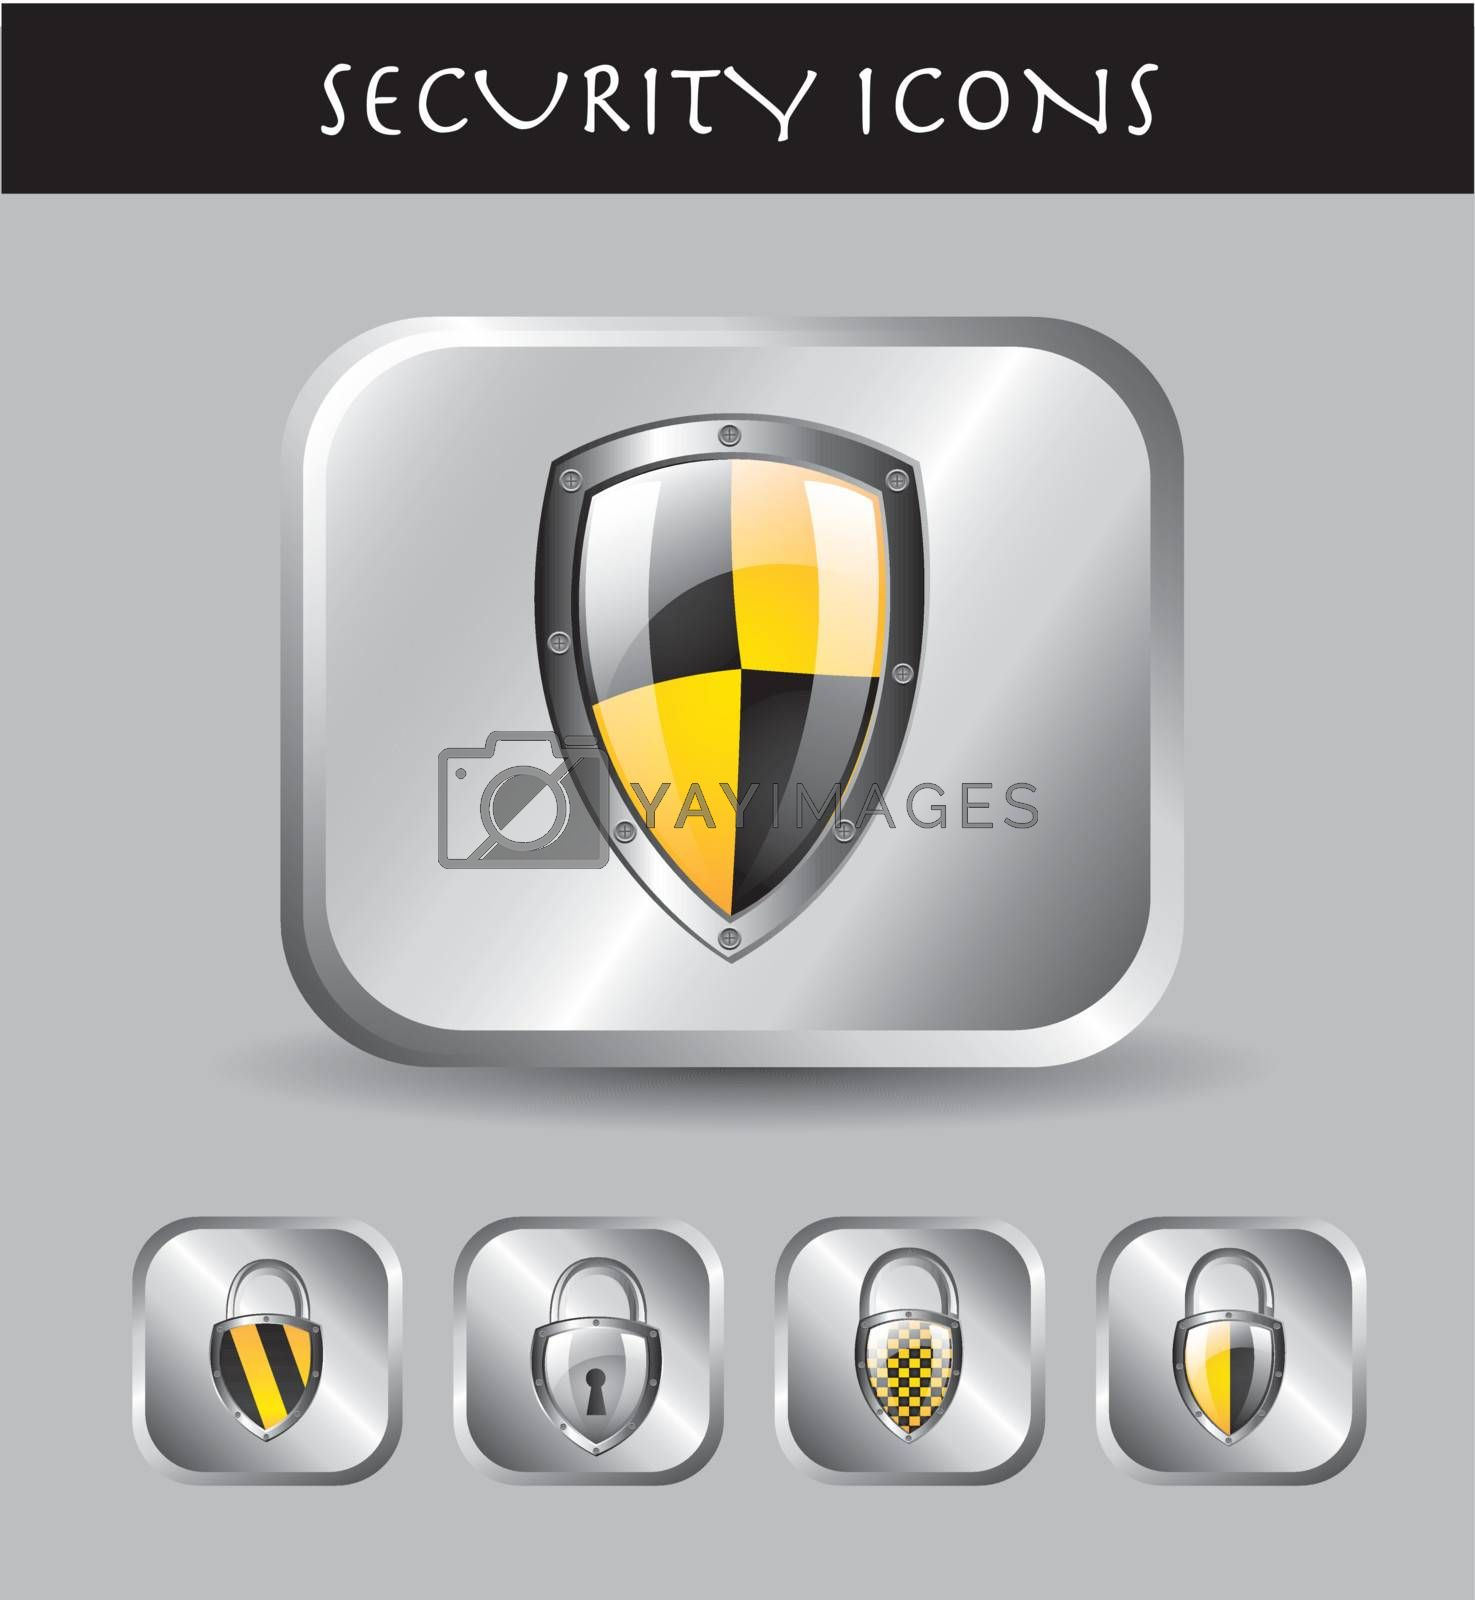 Security icons over chrome background vector illustration